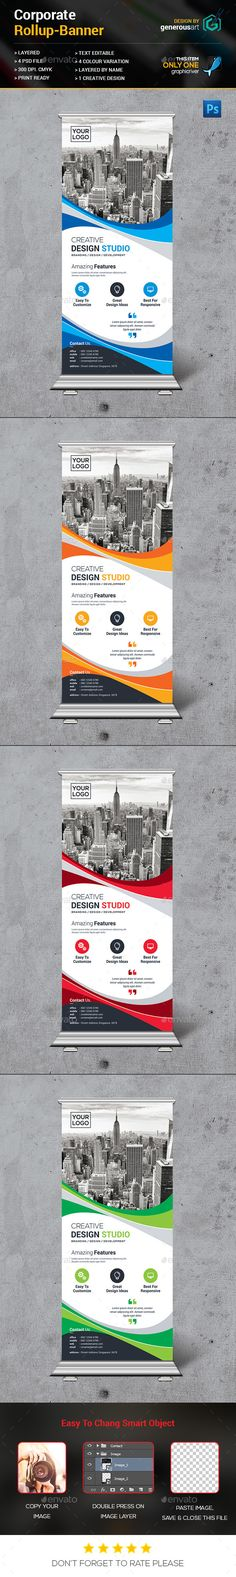 New Rollup Banner by generousart File Information: Easy Customizable and EditableSize in with bleedCMYK ColorDesign in 300 DPI ResolutionPrint Ready Fo Pamplet Design, Flyer Design, Creative Design, Modern Design, Pop Up Banner, Web Banner, Banners, Rollup Design, Digital Signage Displays